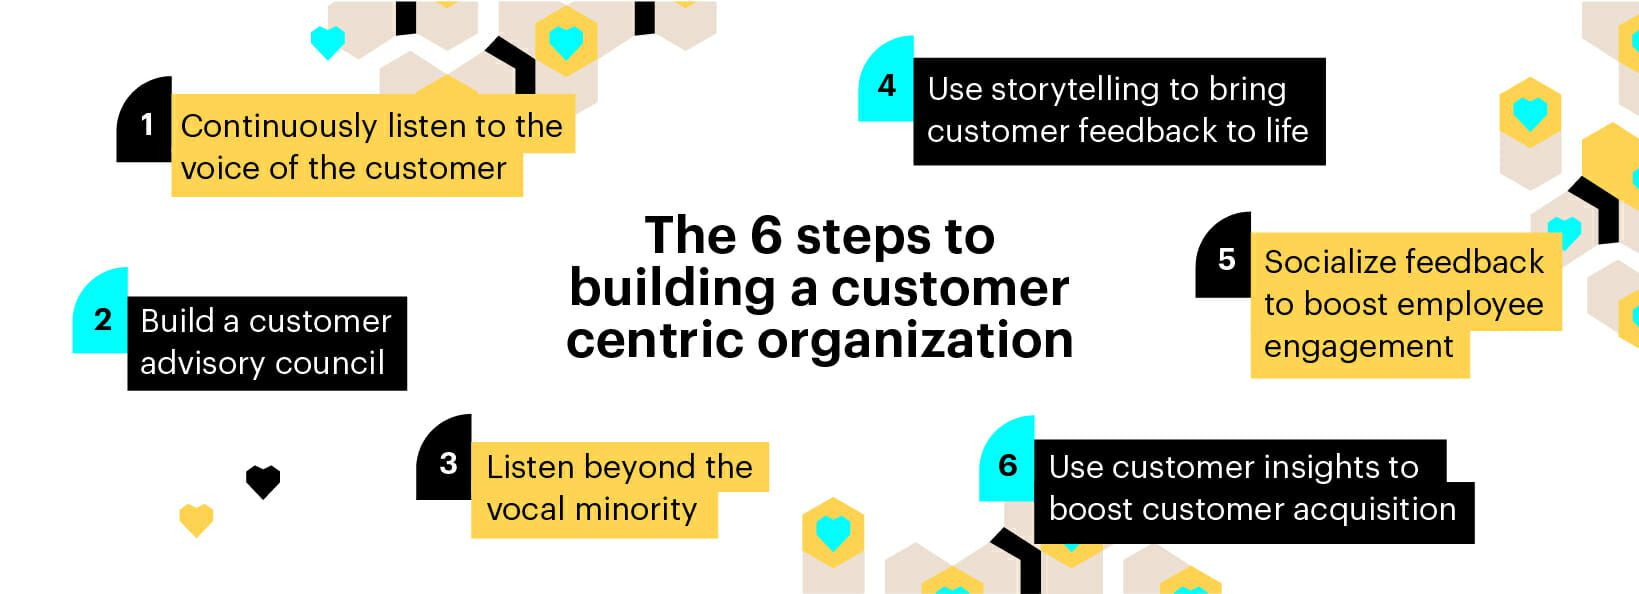 6 steps to building a customer centric organization